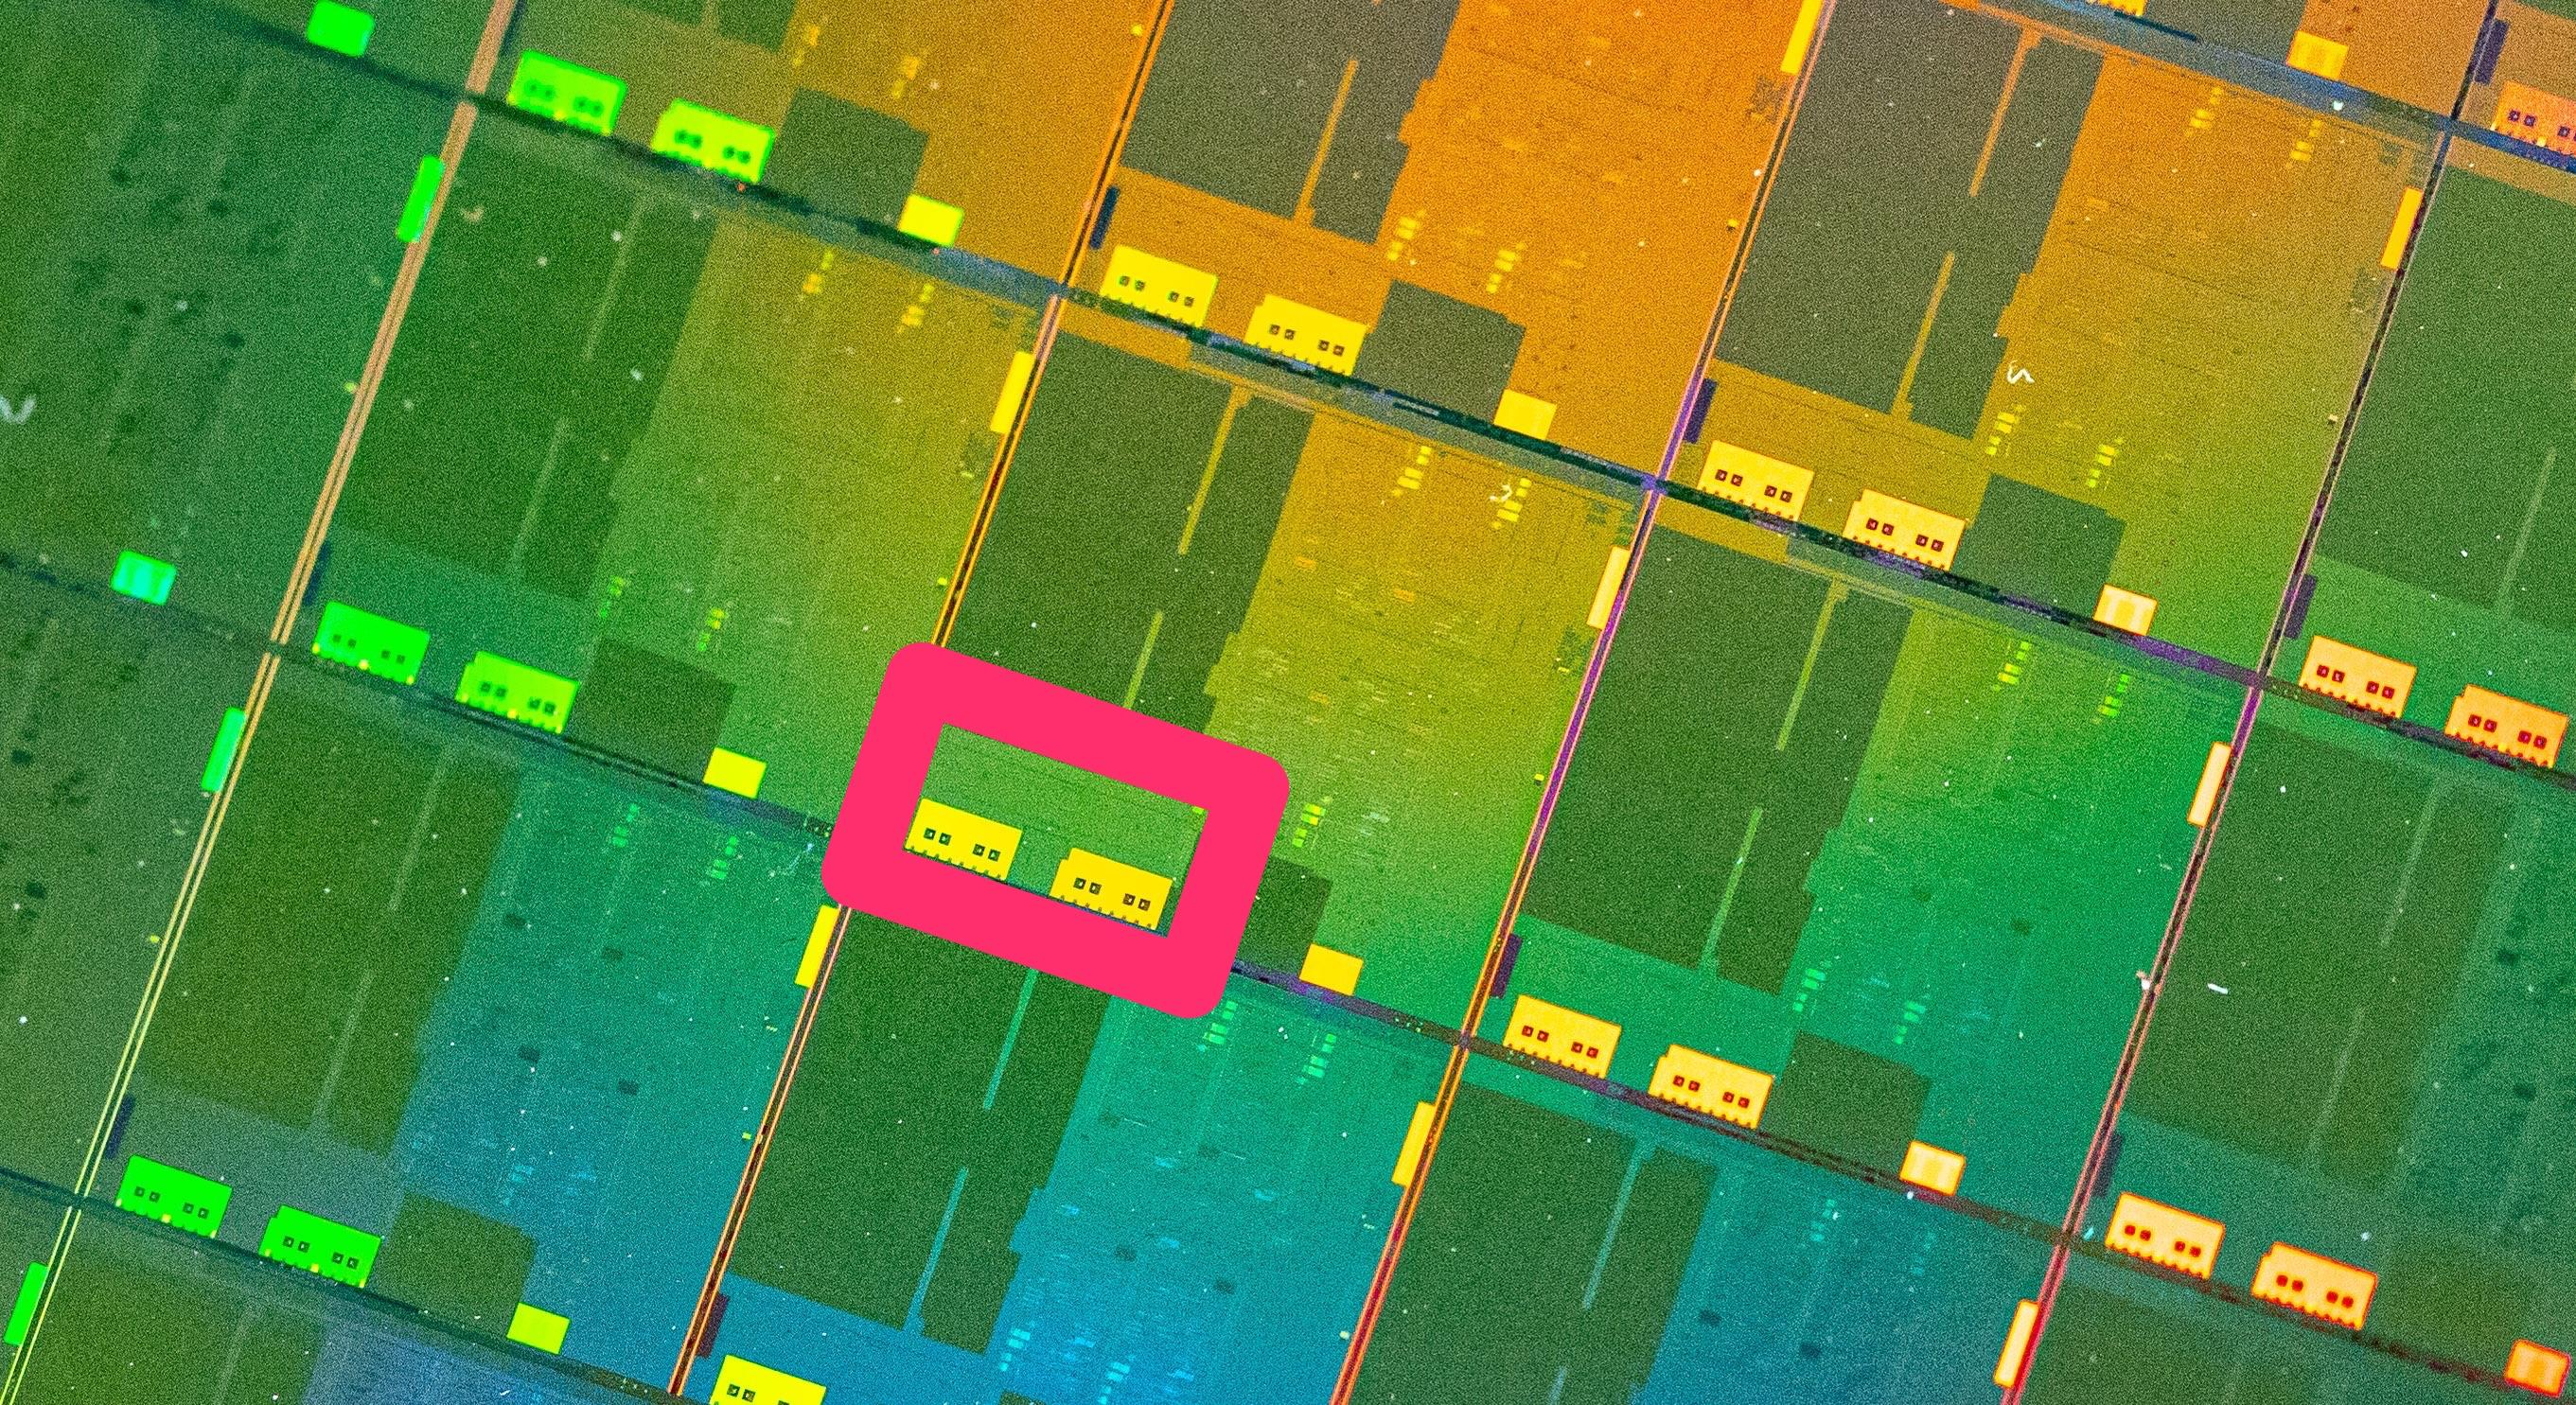 Support for high-speed Thunderbolt connections accounts for a sizable fraction of the circuitry on Intel's new 10nm Ice Lake processors.